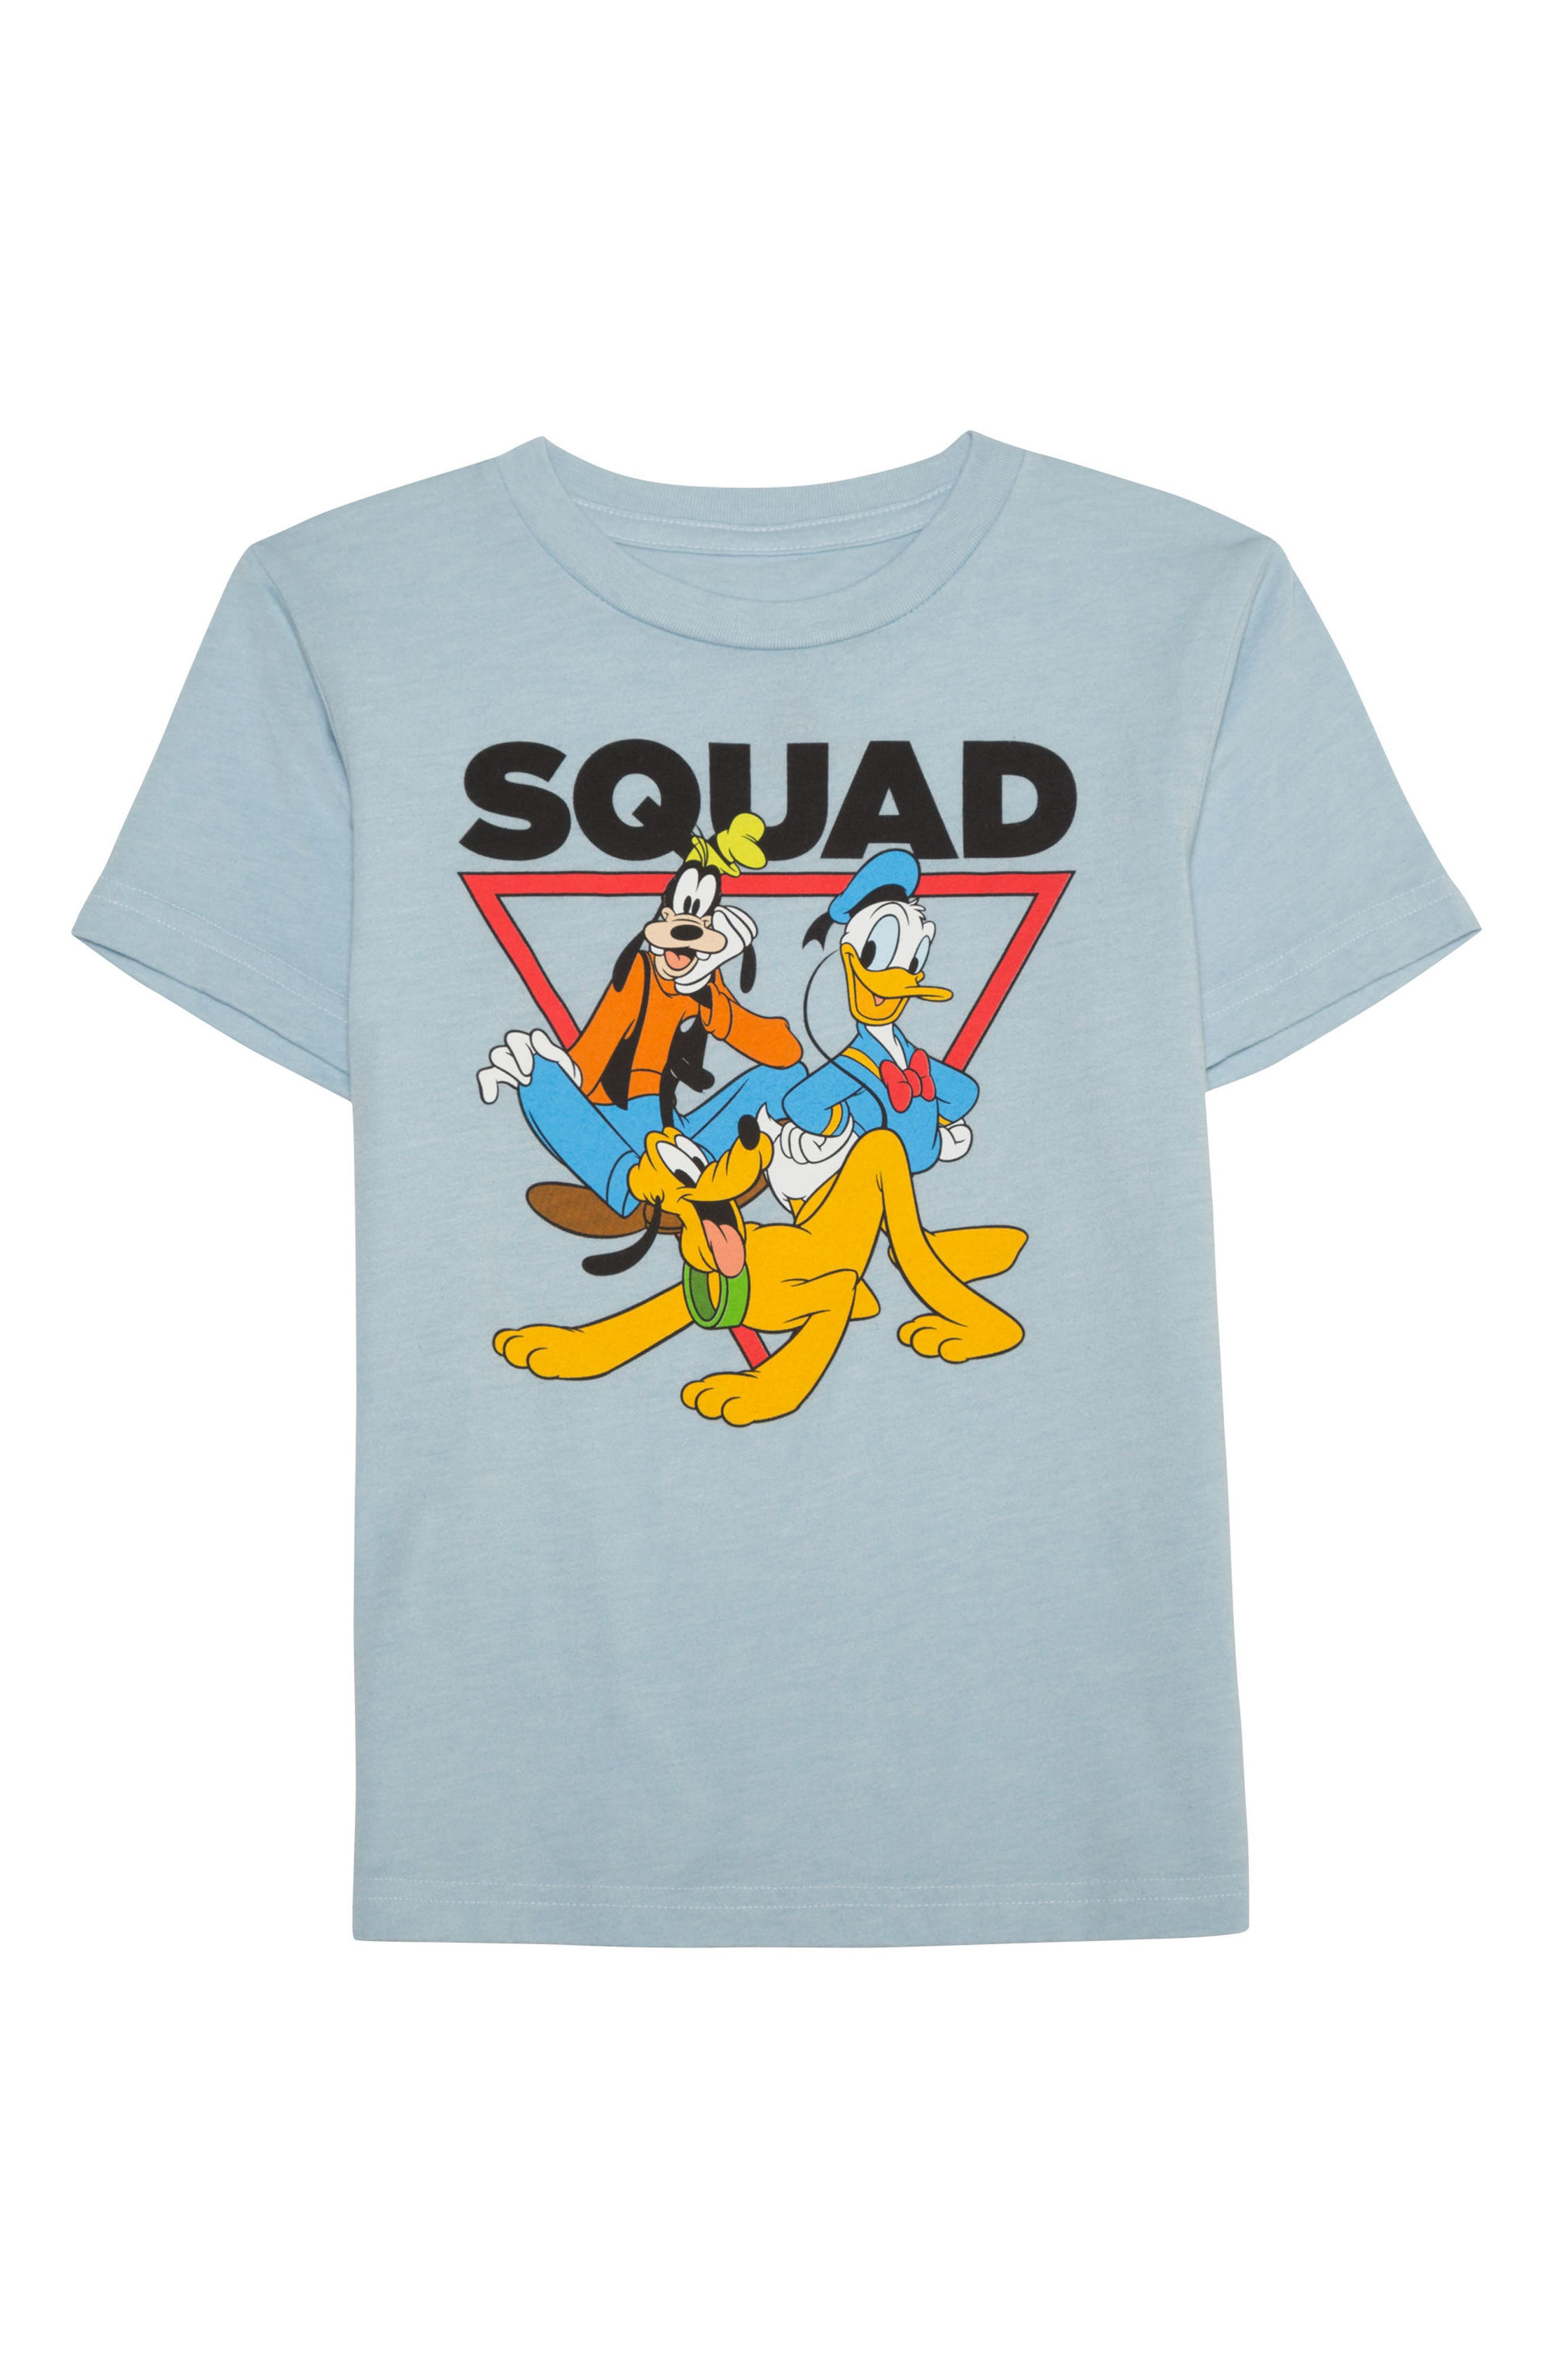 Squad T-Shirt,                             Main thumbnail 1, color,